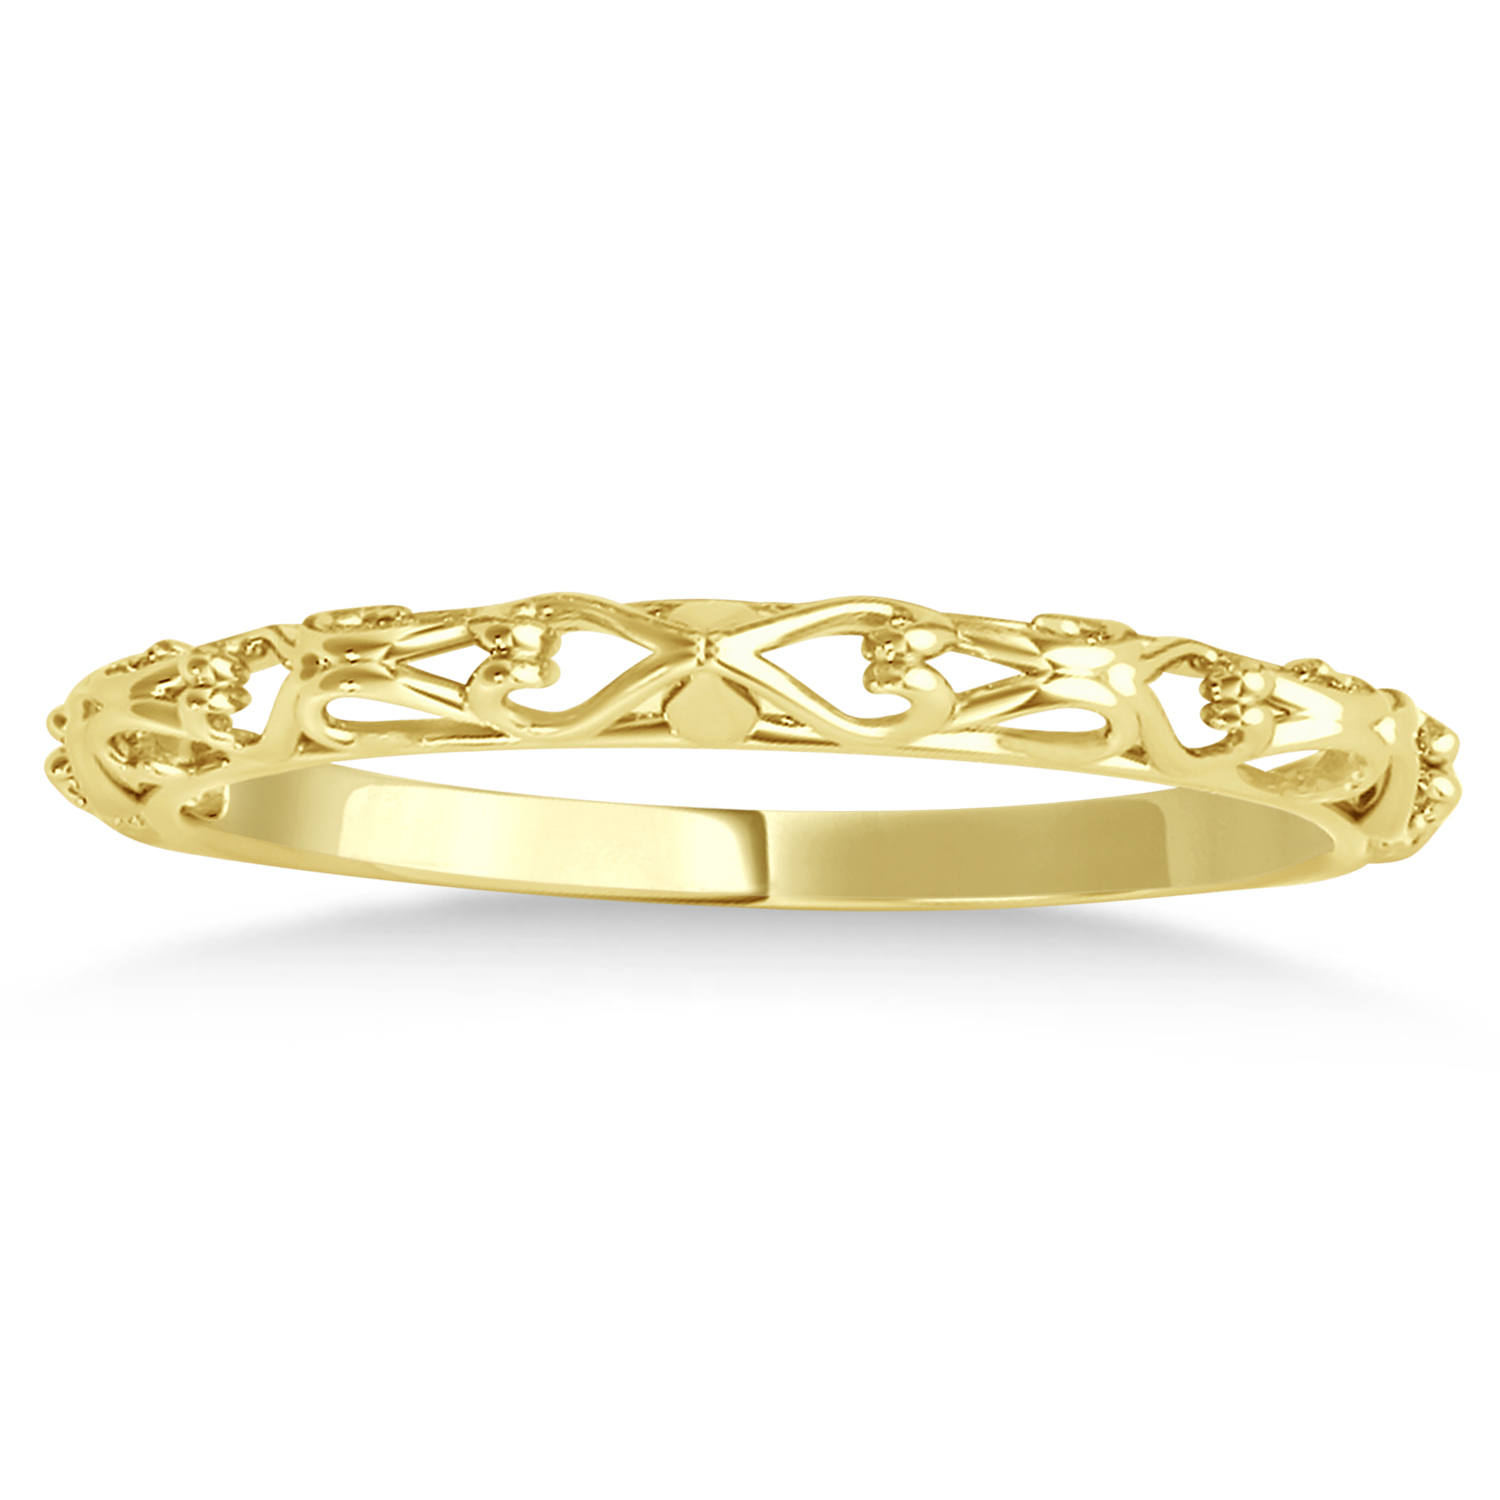 Antique Style Open Scrollwork Wedding Band 18k Yellow Gold